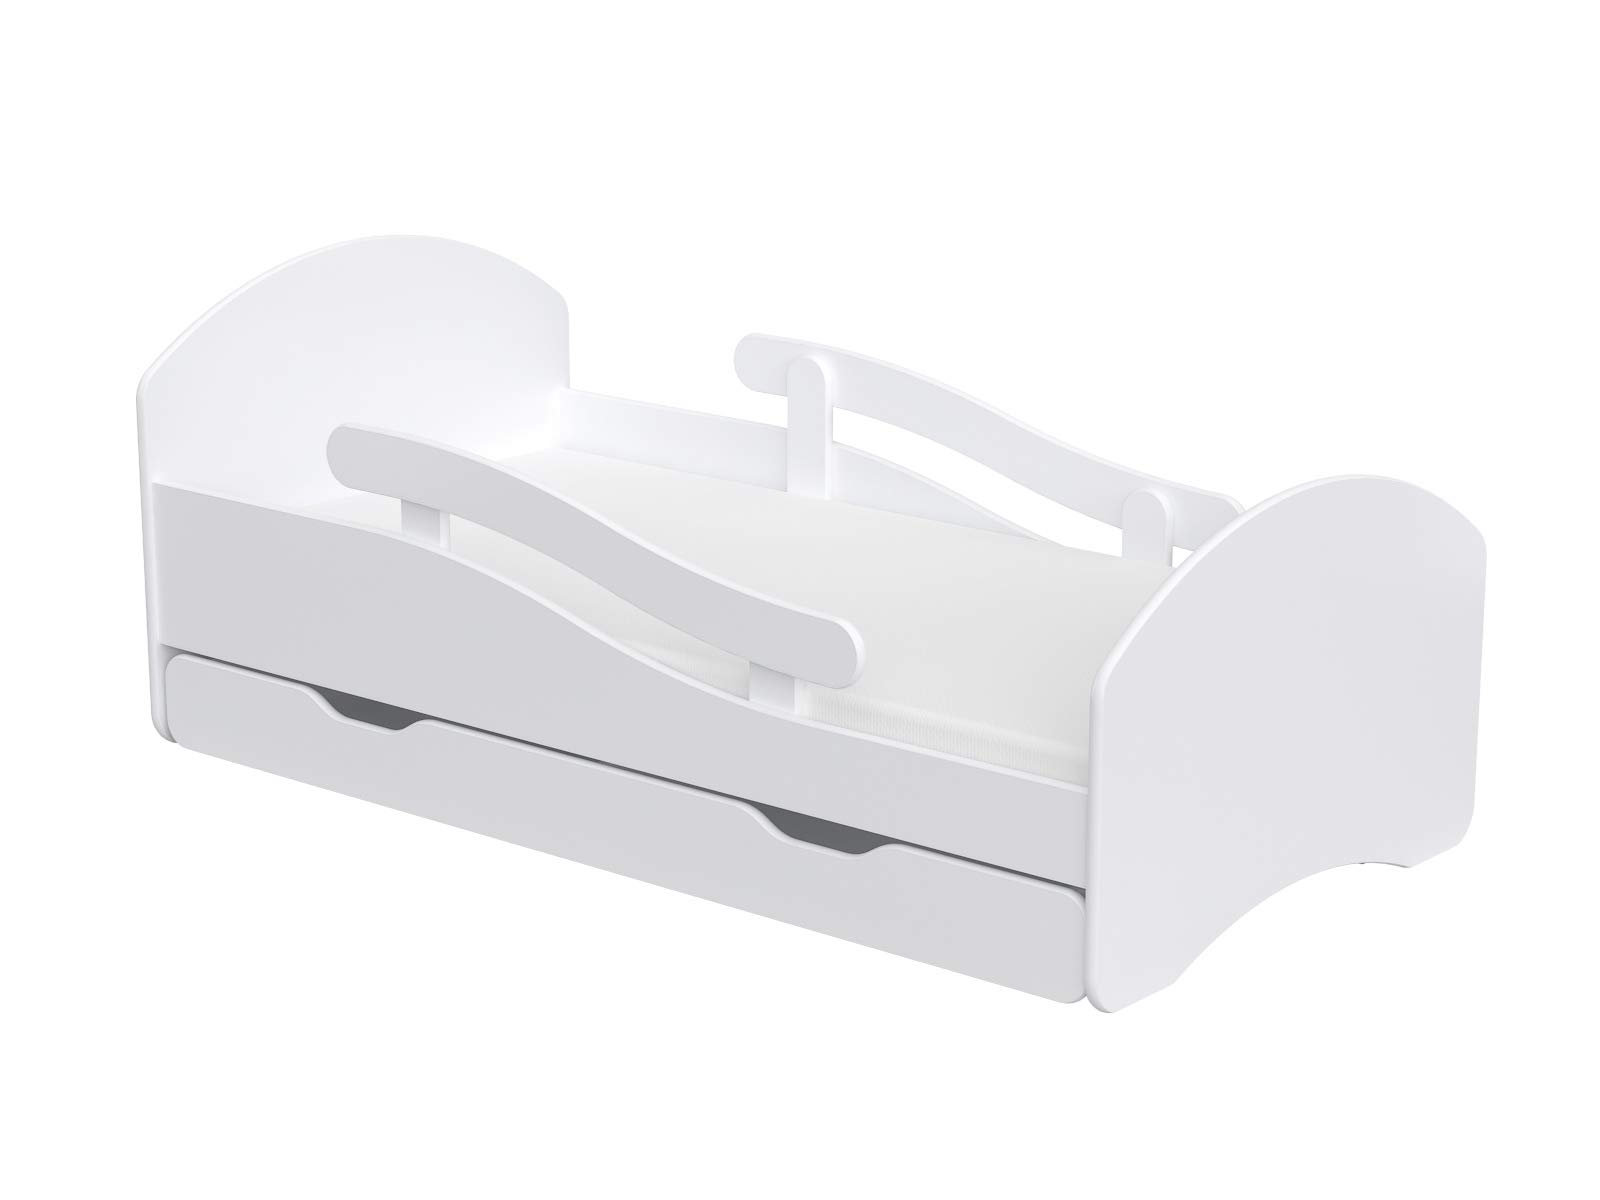 ChildrensBeds Home Single Bed Oscar For Kids Children Toddler Juniors With Drawers and 6 cm Foam Mattress Included (White, 160x80) Children's Beds Home Bed with barriers - internal dimensions 140x70, 160x80, 180x80 (External dimensions: 145x76, 165x86, 185x86) Height to top of the bed frame at lowes point is 27 cm. Bed frame with load capacity of 100 kg, Fittings + installation instructions Universal bed entrance - right or left side, front barriers can be easily removed during the day and put back at night 1